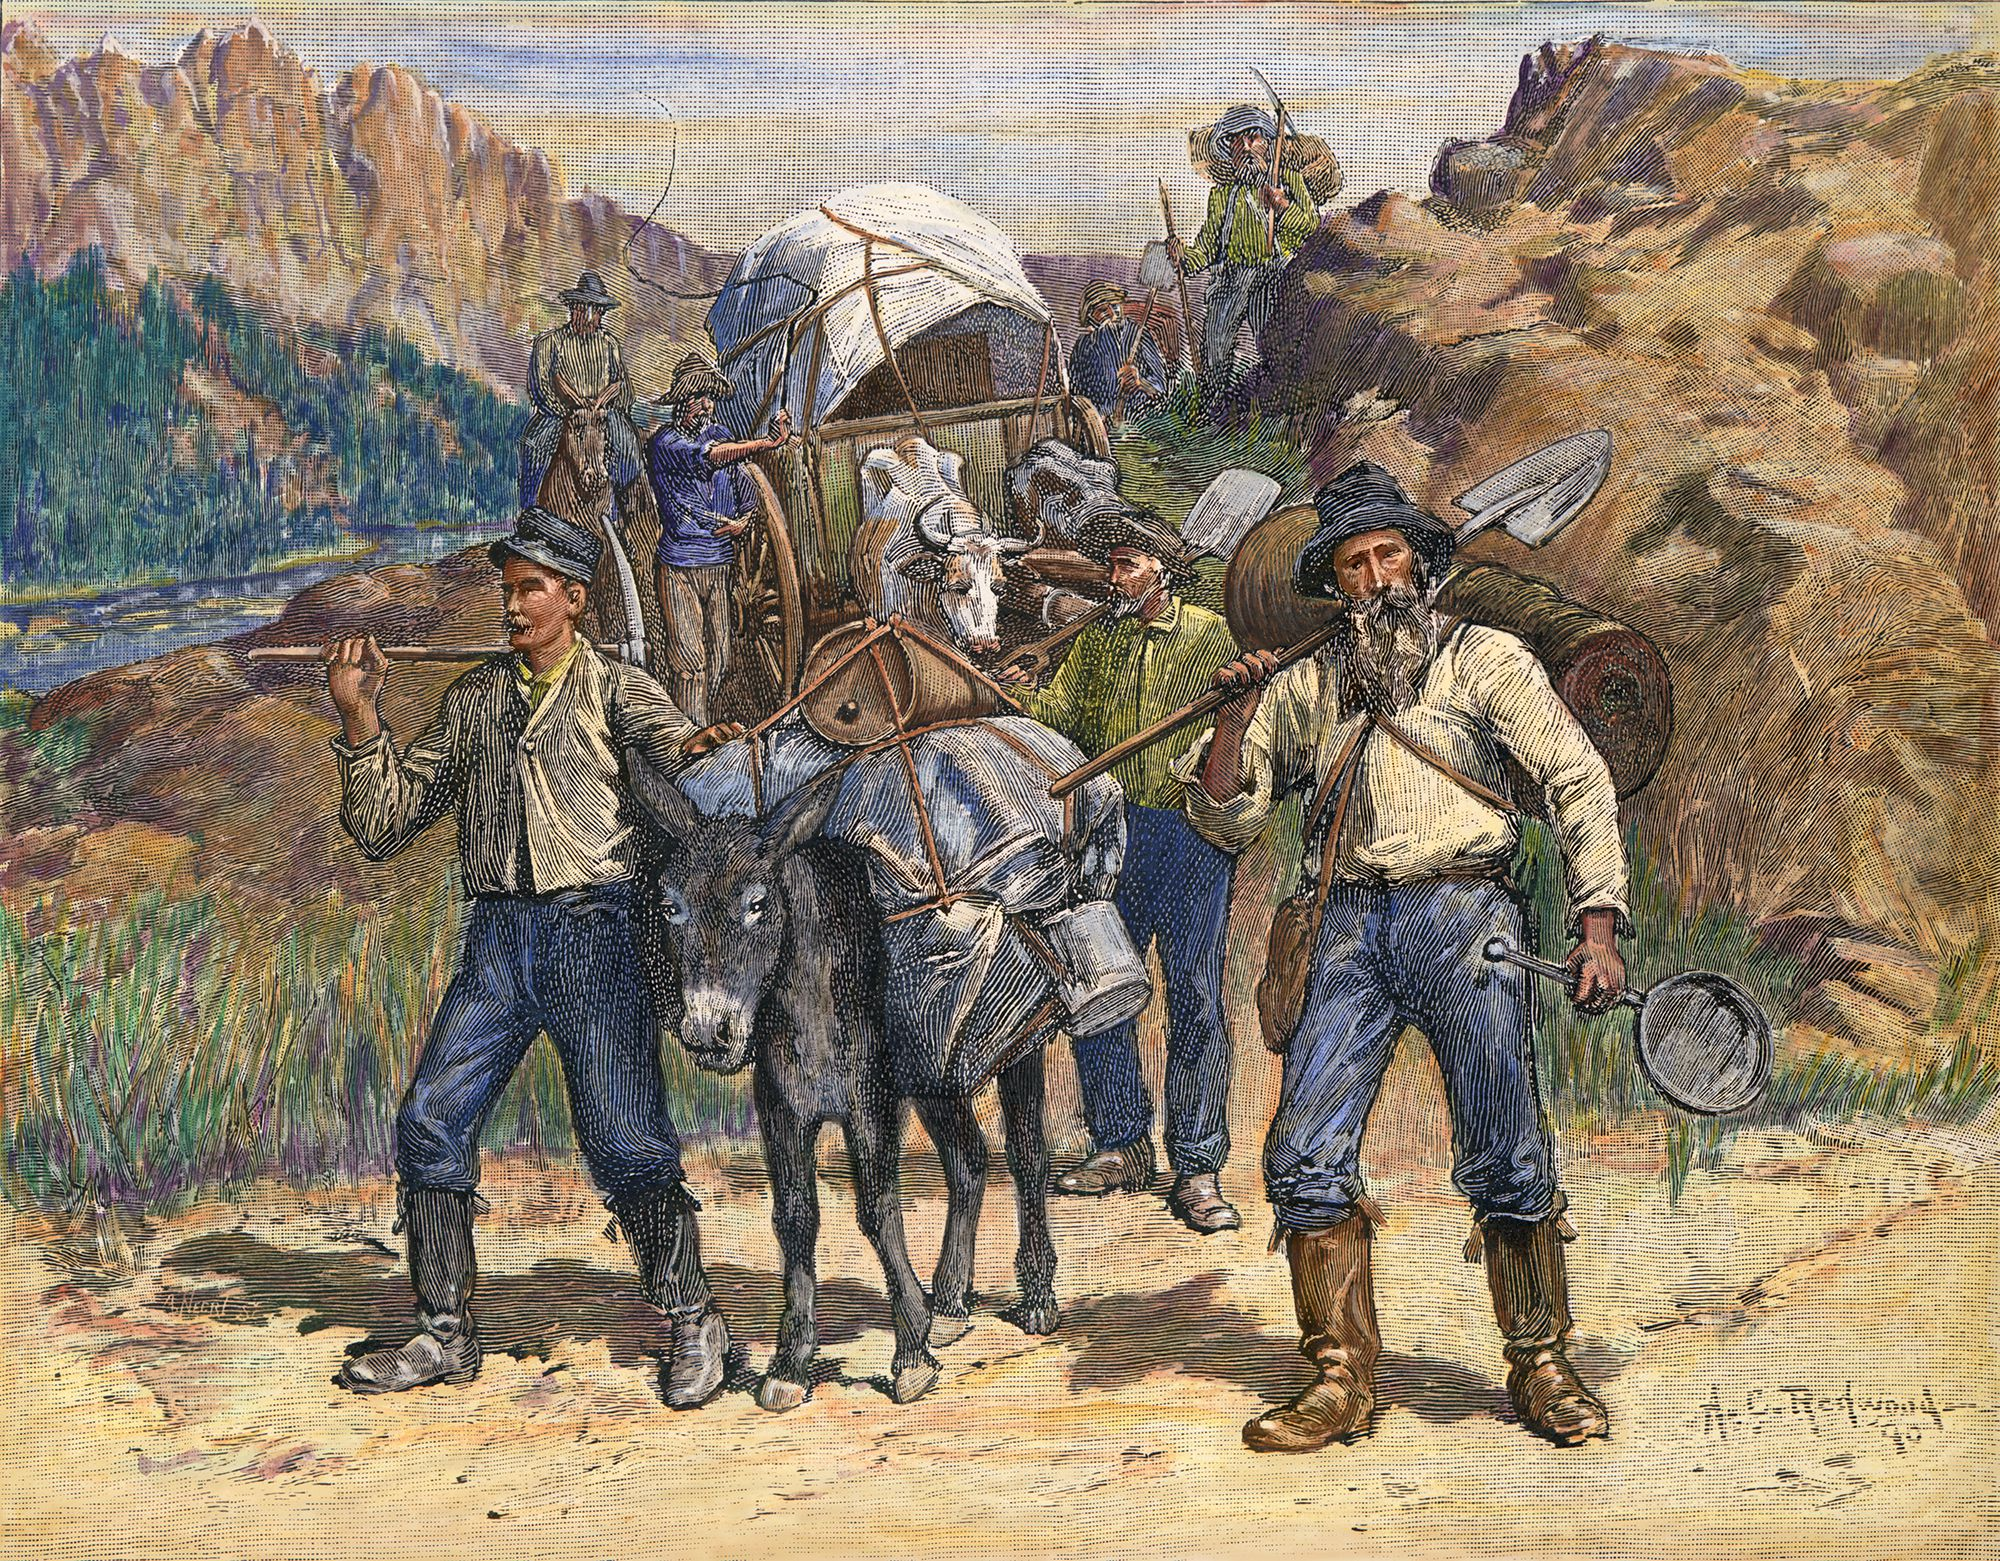 Forty-niners during the California Gold Rush